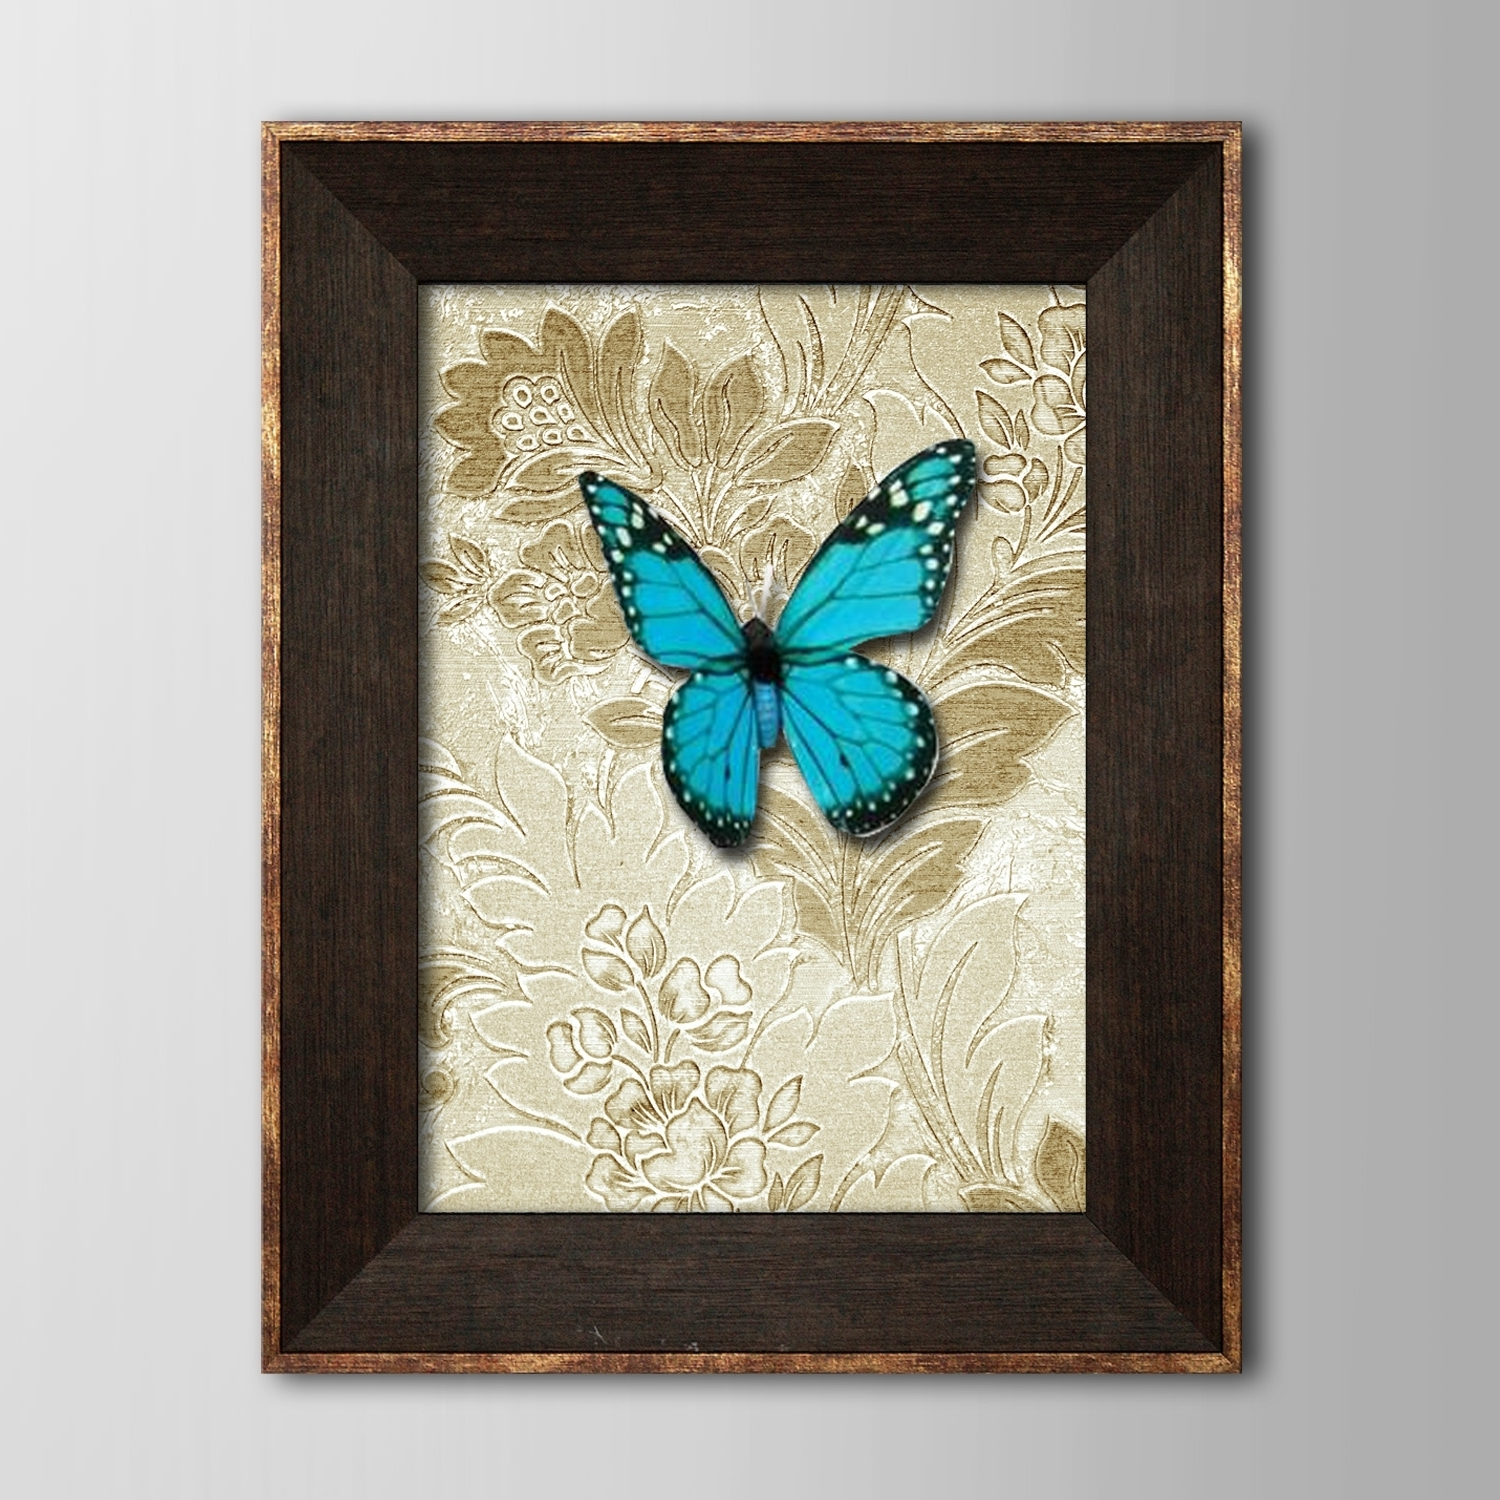 Recent 3d Butterfly Framed Wall Art Within Framed 3d Art Wall Art, Animal 3d Blue Butterflies, Wall Decor (View 5 of 15)